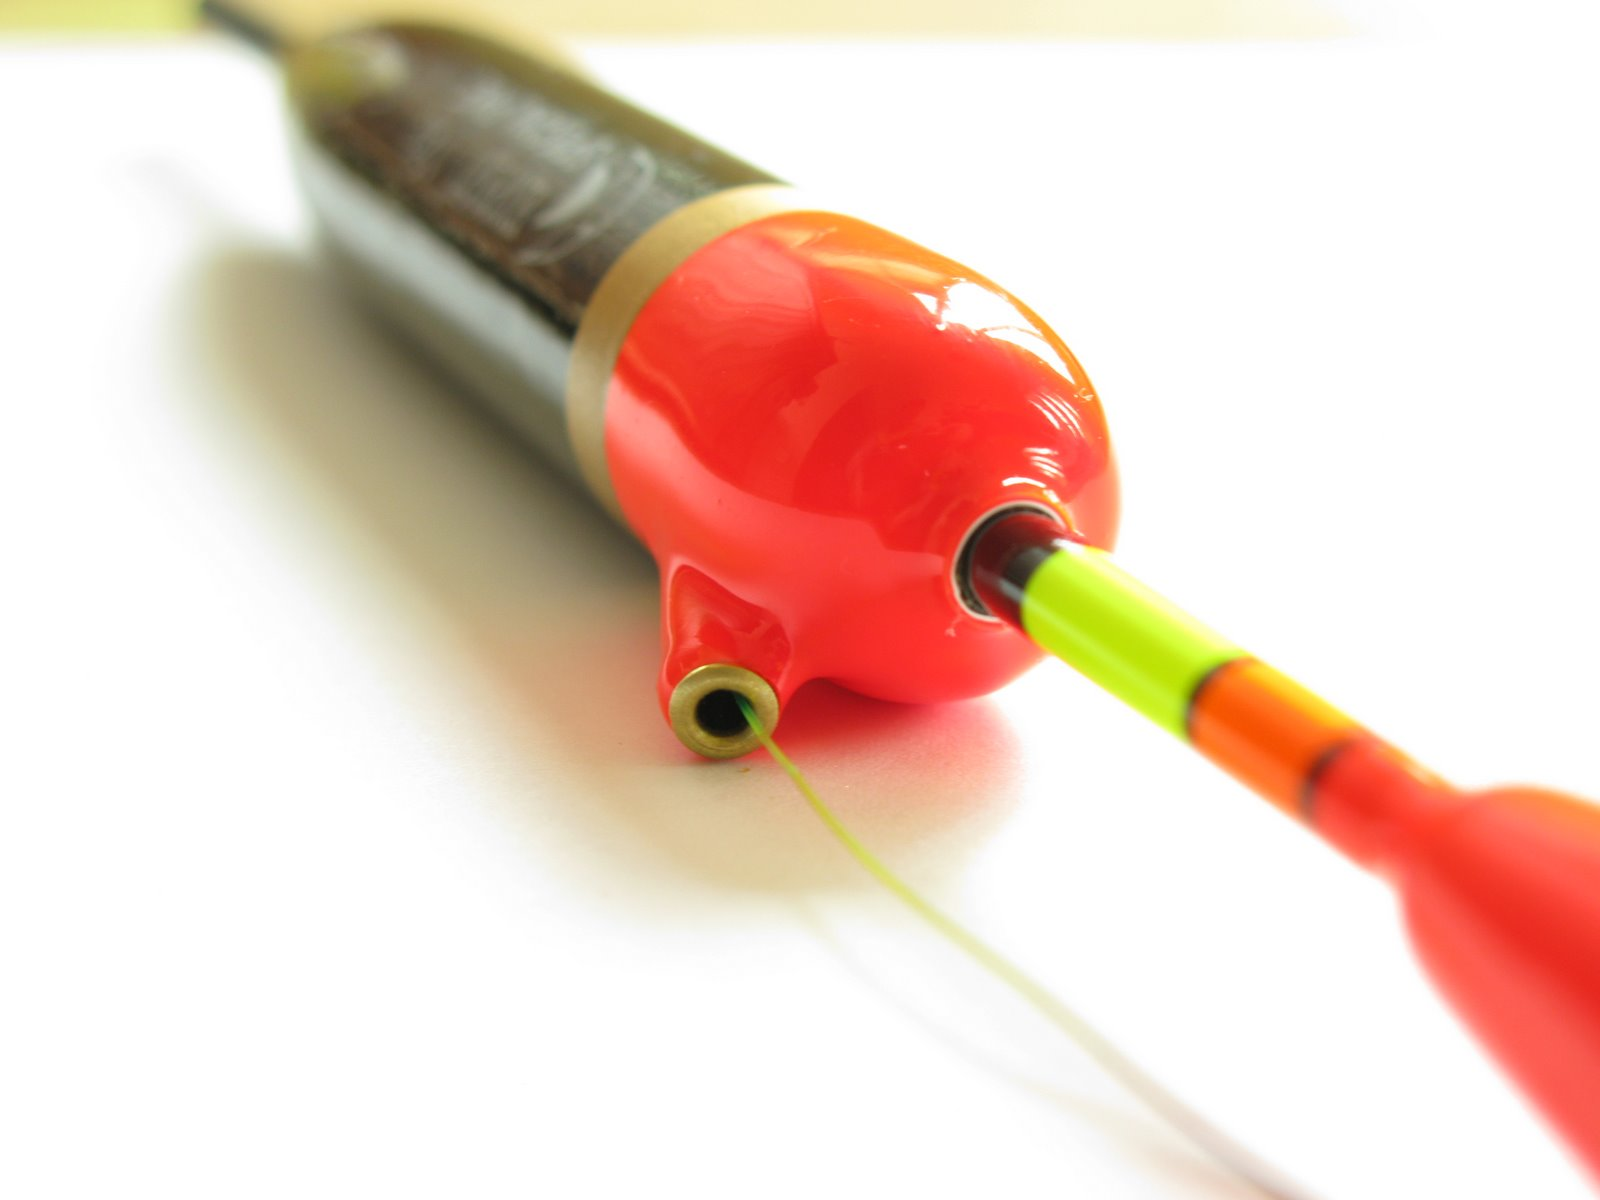 slip jig instructions for perch